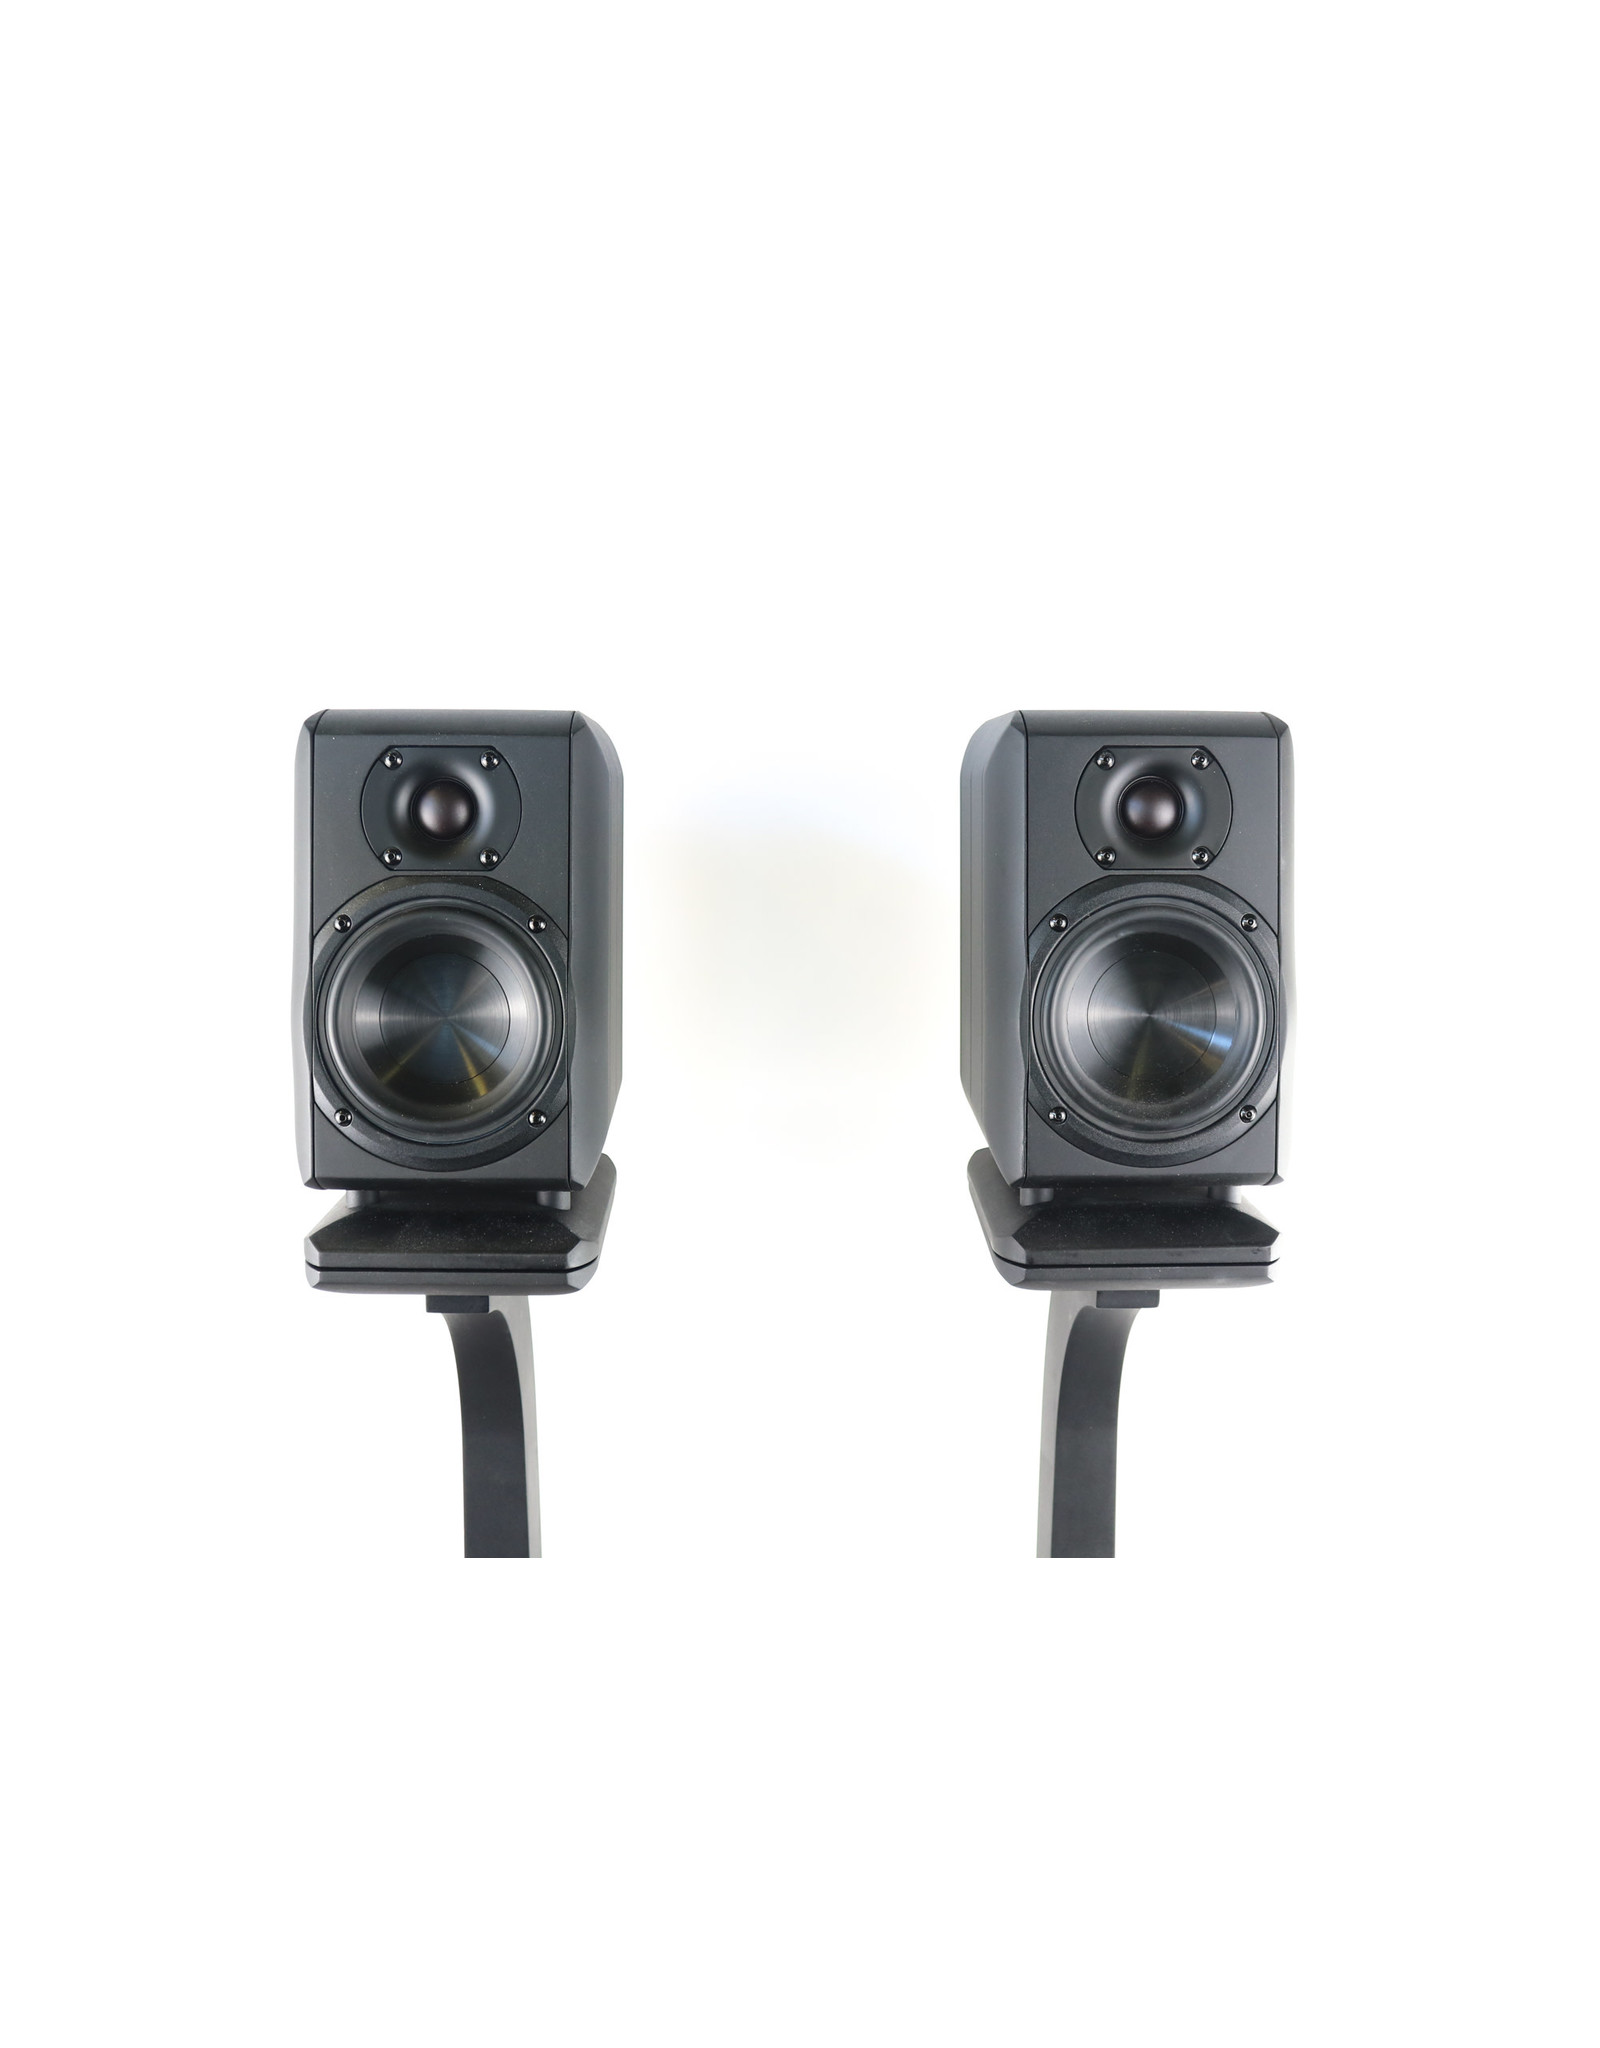 Chario Chario Piccolo Bookshelf Speakers with Stands USED